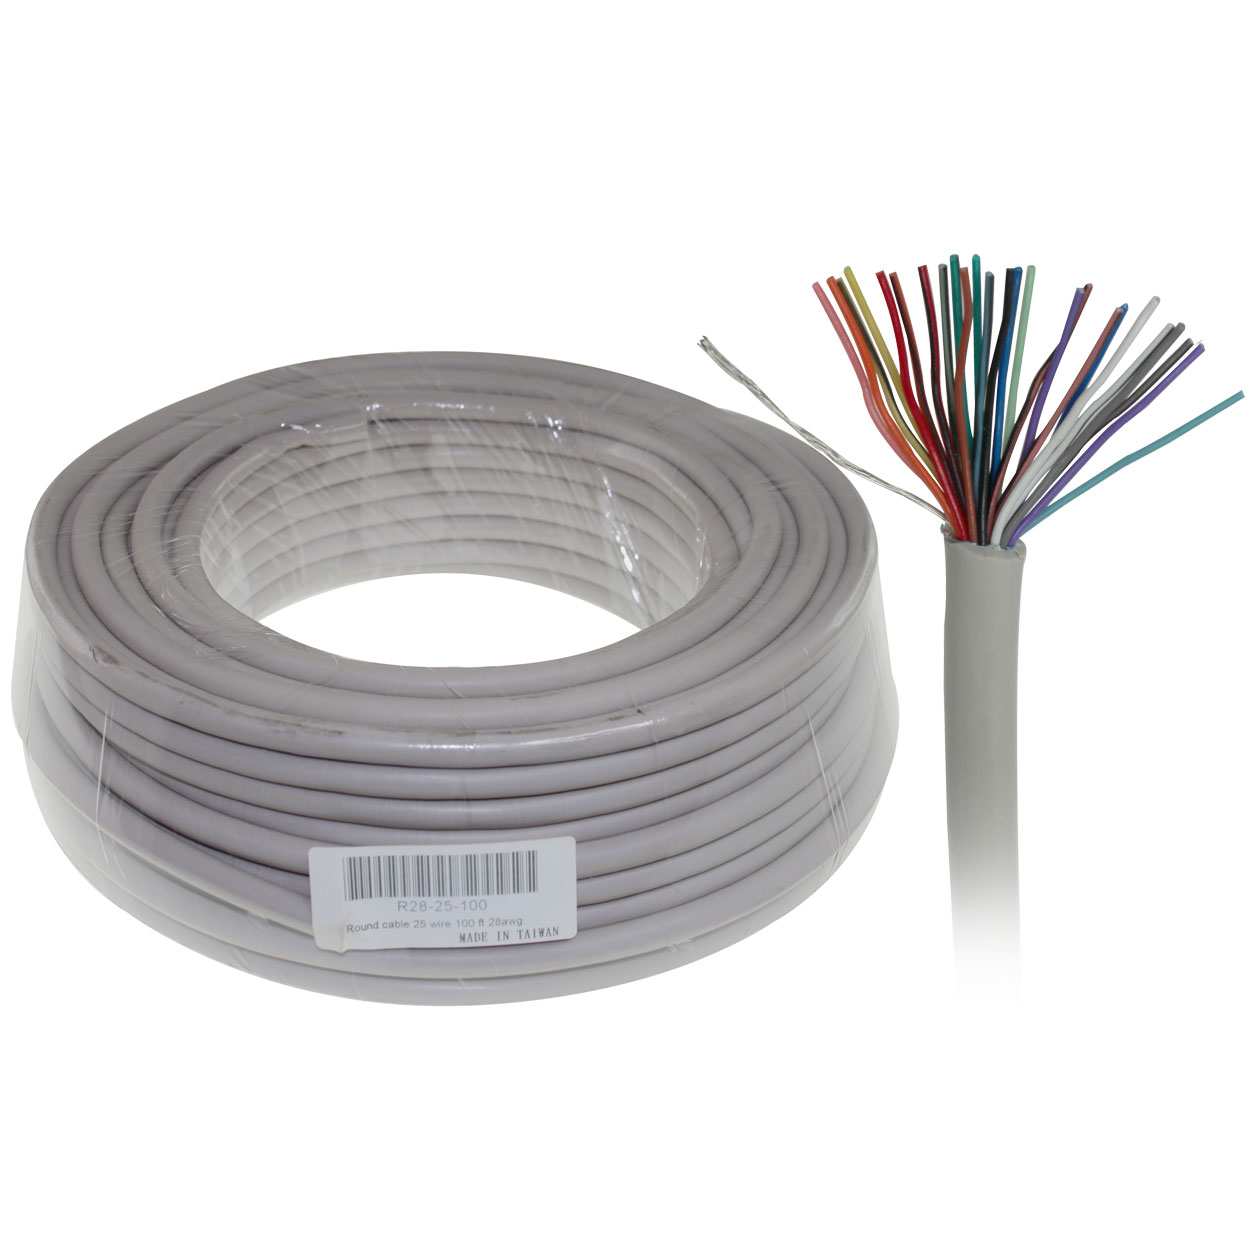 100ft Round Bulk Cable, 25 Wire, 28AWG